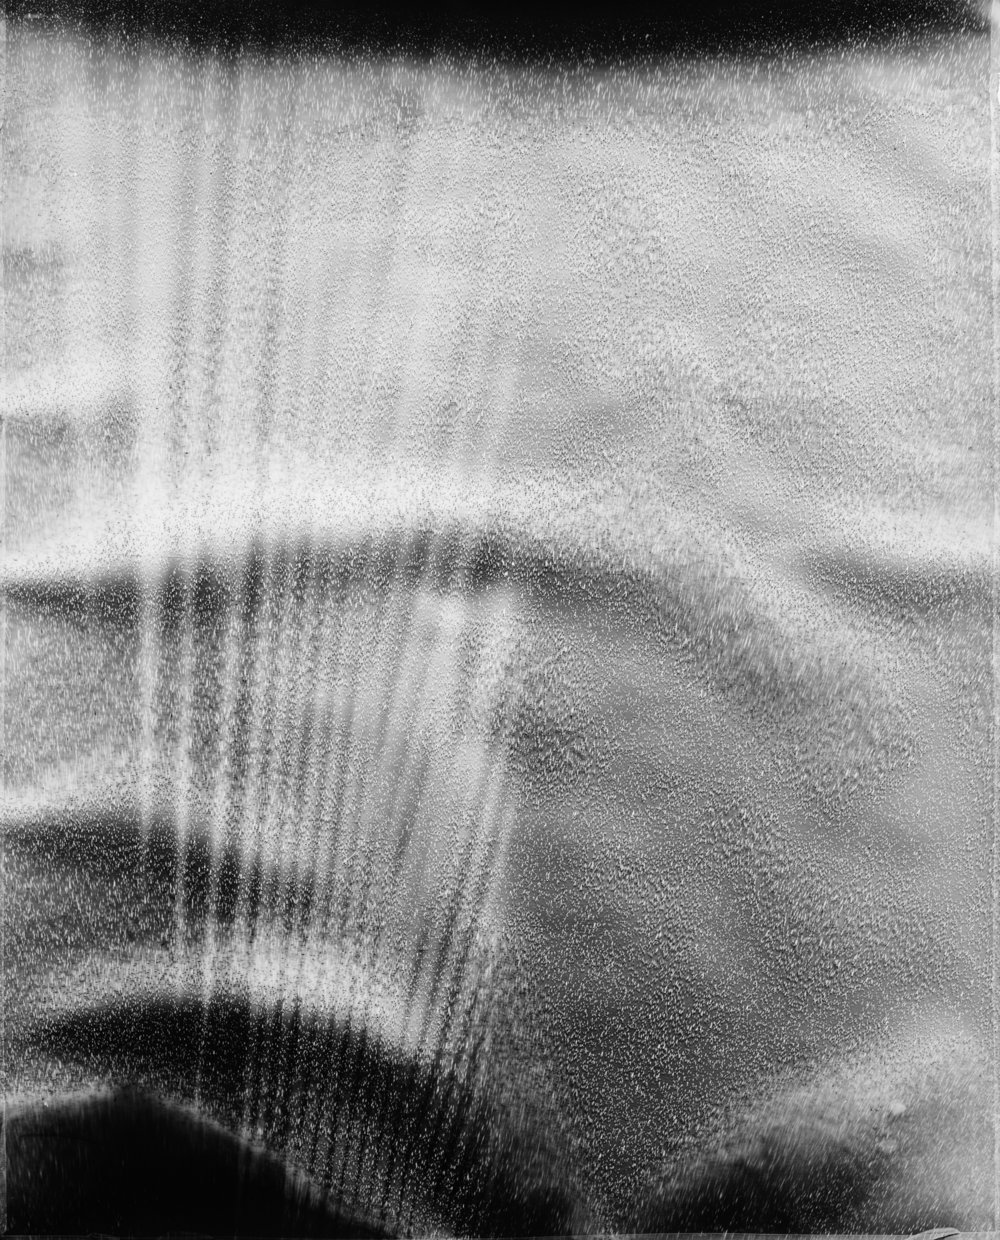 KLEA McKENNA  Rainstorm #26,  2016 Unique gelatin silver photogram of rain. 42 x 34 inches